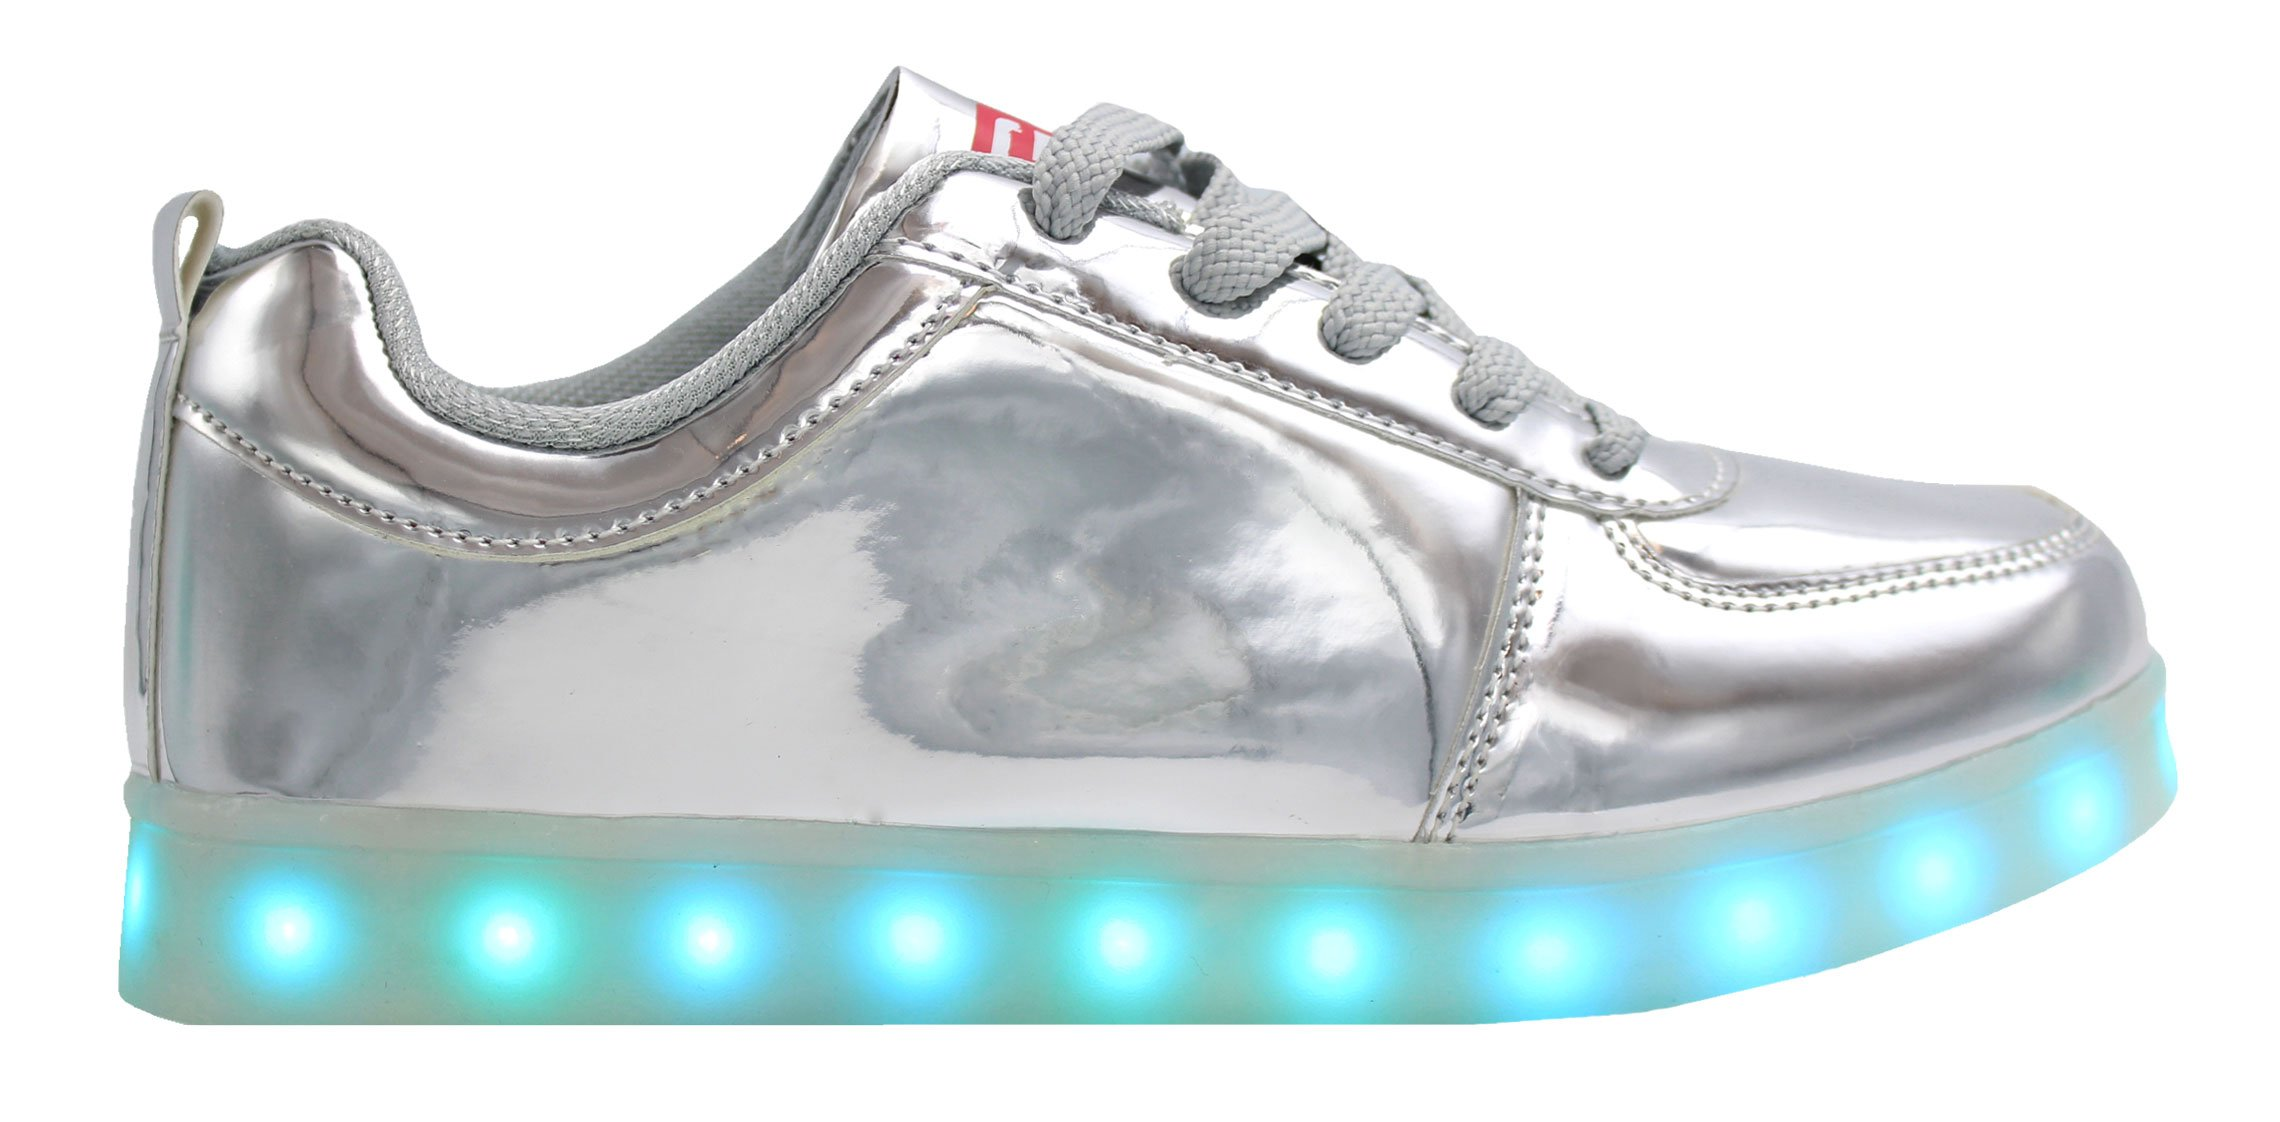 Transformania Toys Galaxy LED Shoes Light Up USB Charging Low Top Men's Sneakers (Silver) 9